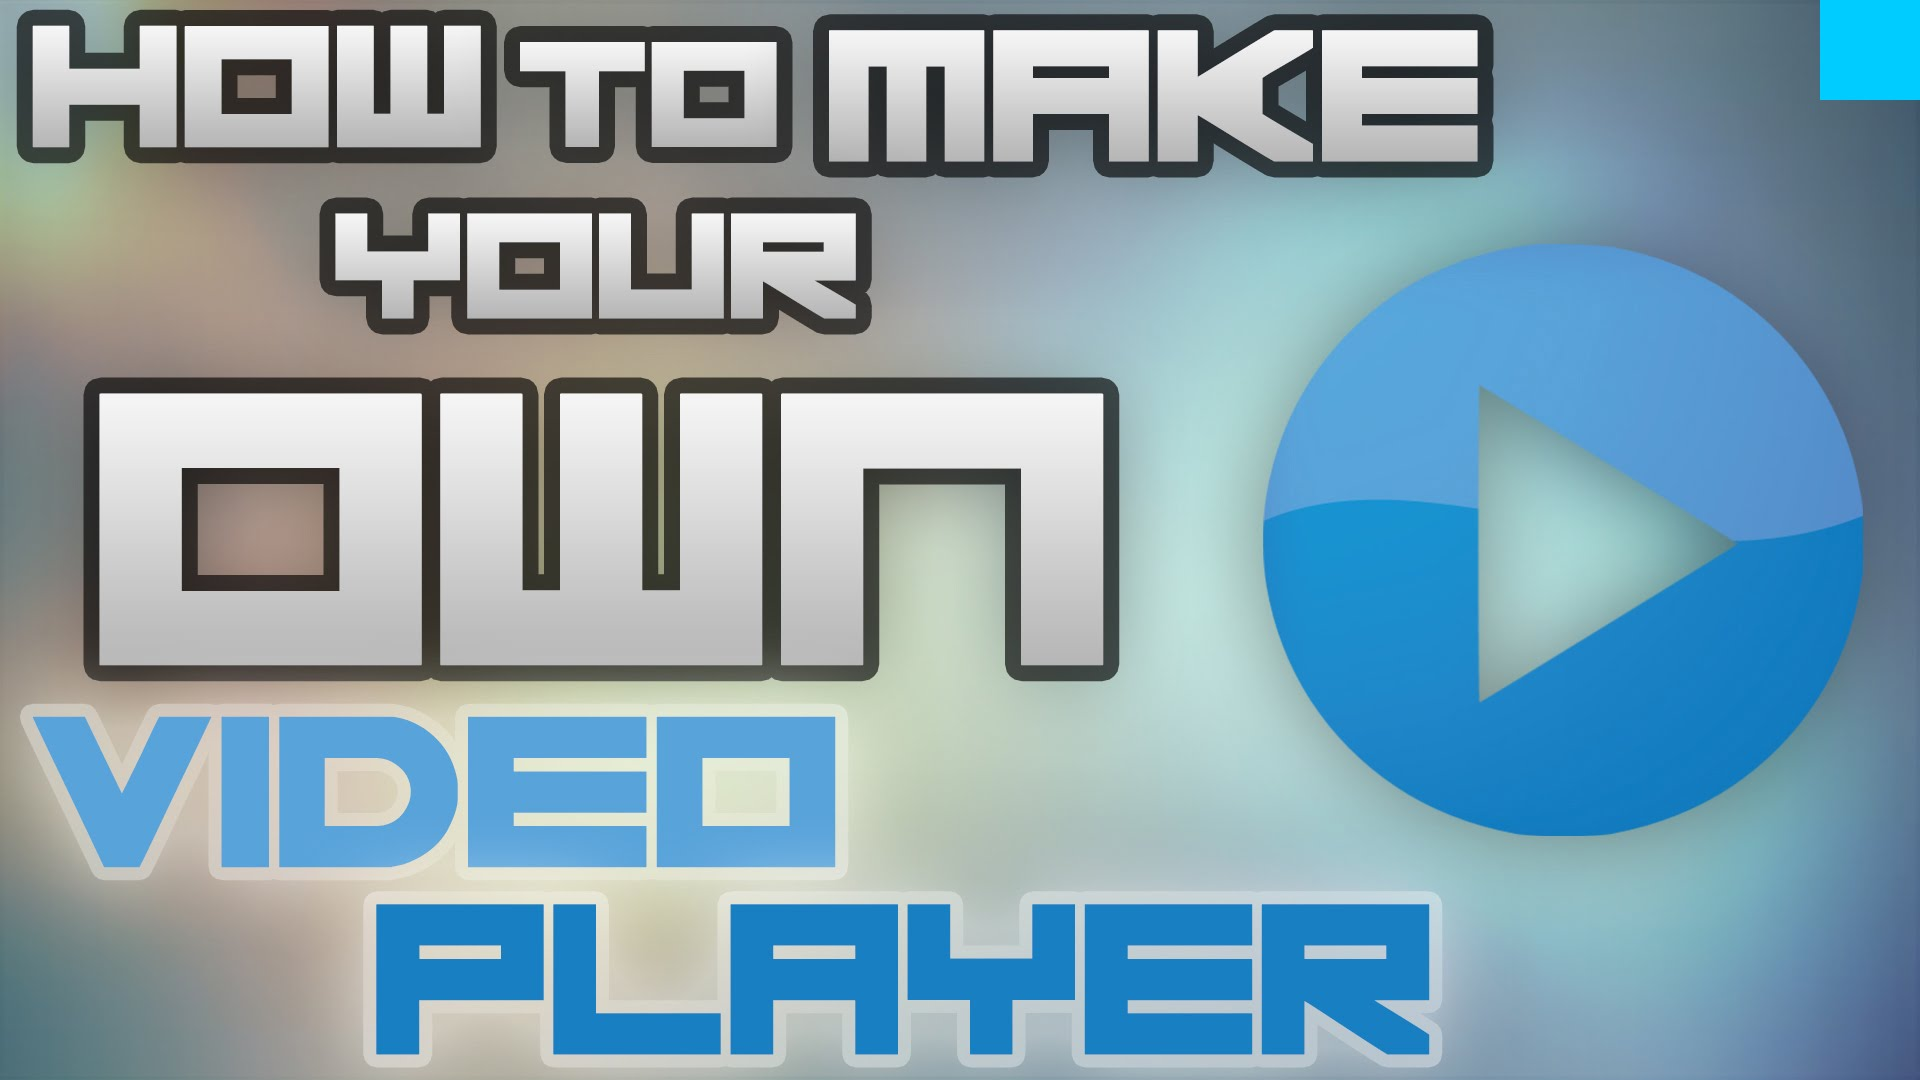 Musique Video How To Make A Video Player In Java With Your Own Design